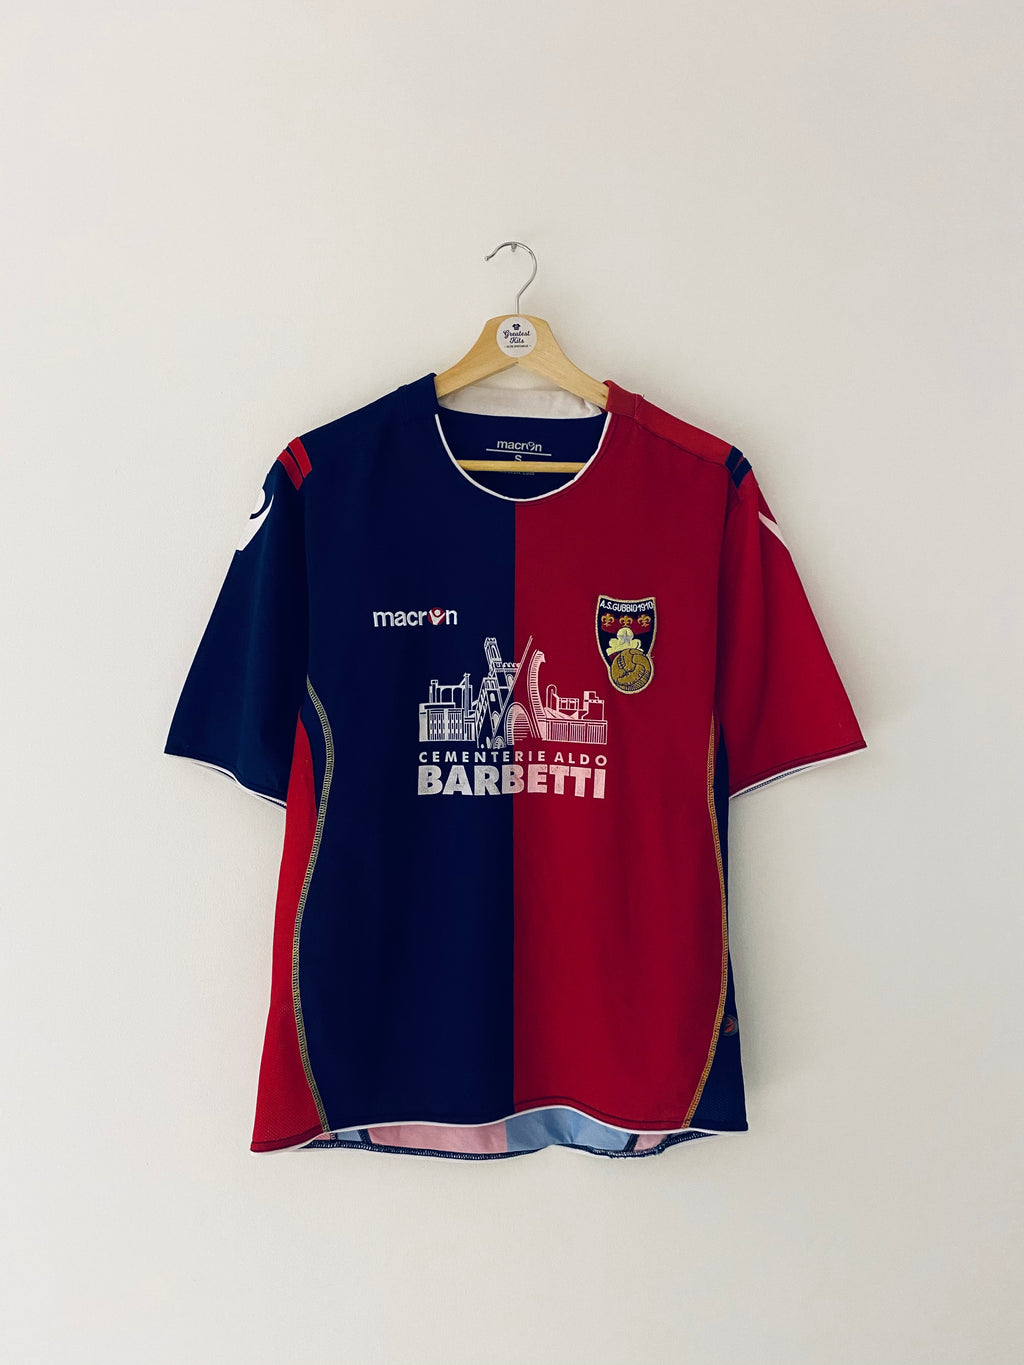 2010/11 Gubbio Home Centenary Shirt (S) 8/10